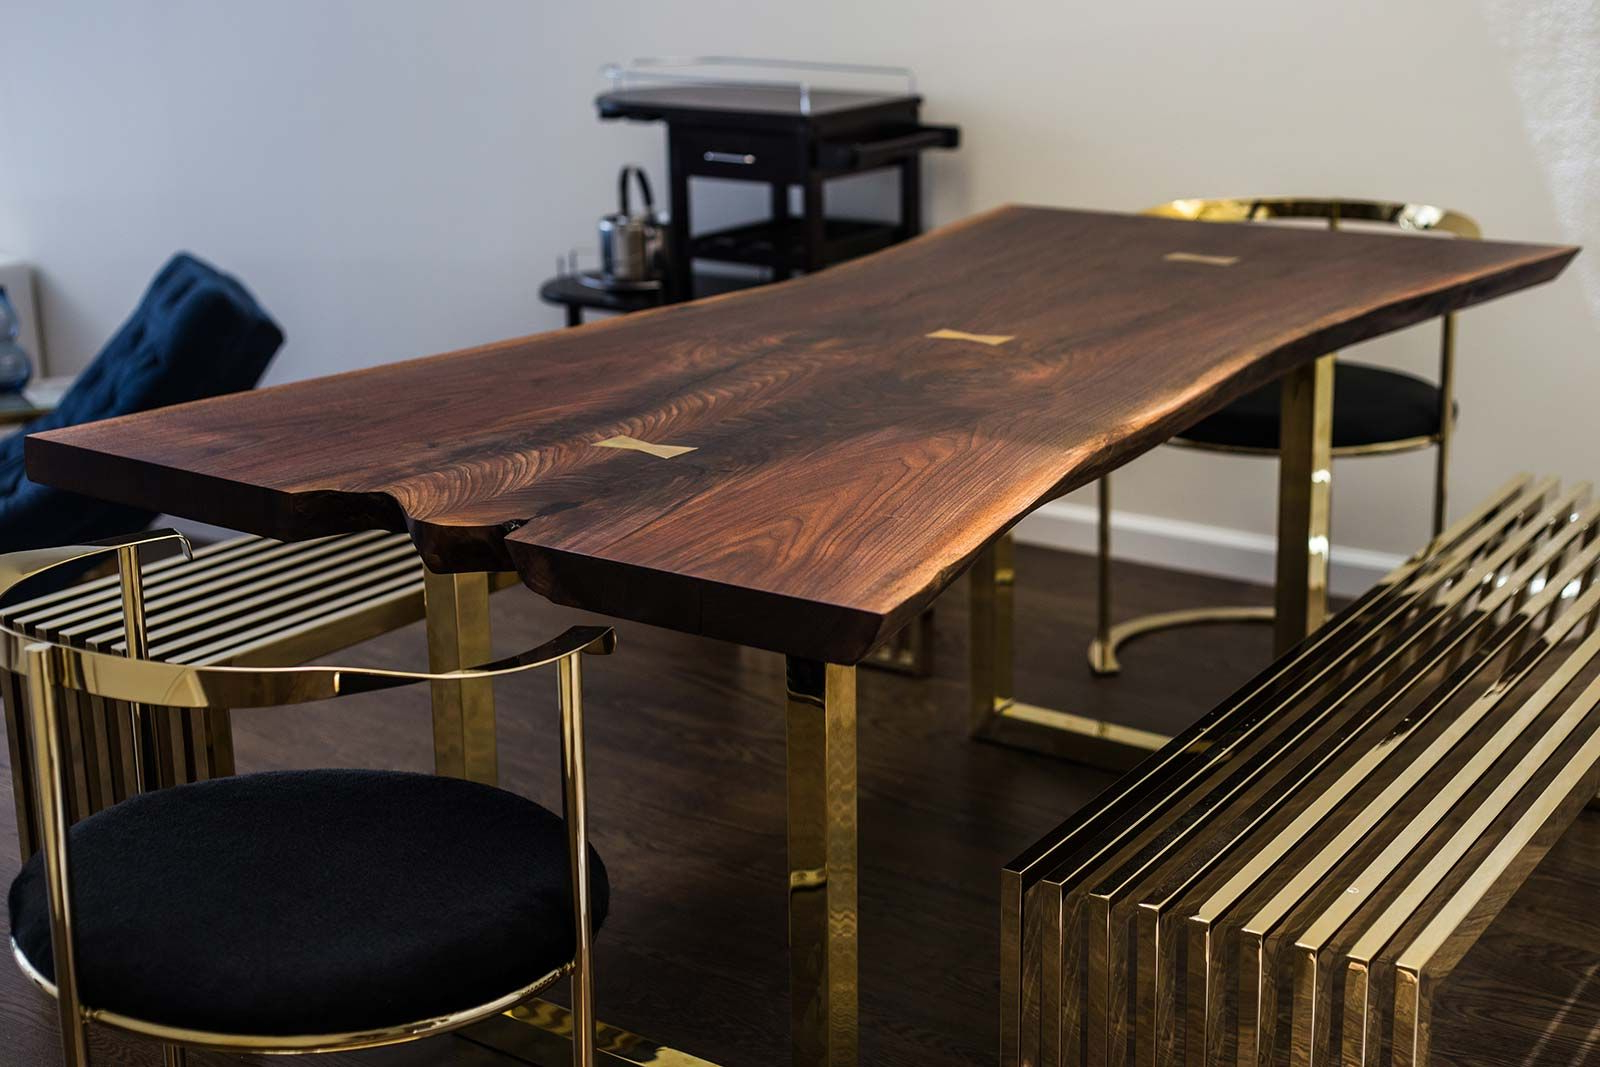 Preferred Black Walnut Dining Table With Brass Bowties Live Edge Wood For Walnut Finish Live Edge Wood Contemporary Dining Tables (View 4 of 30)